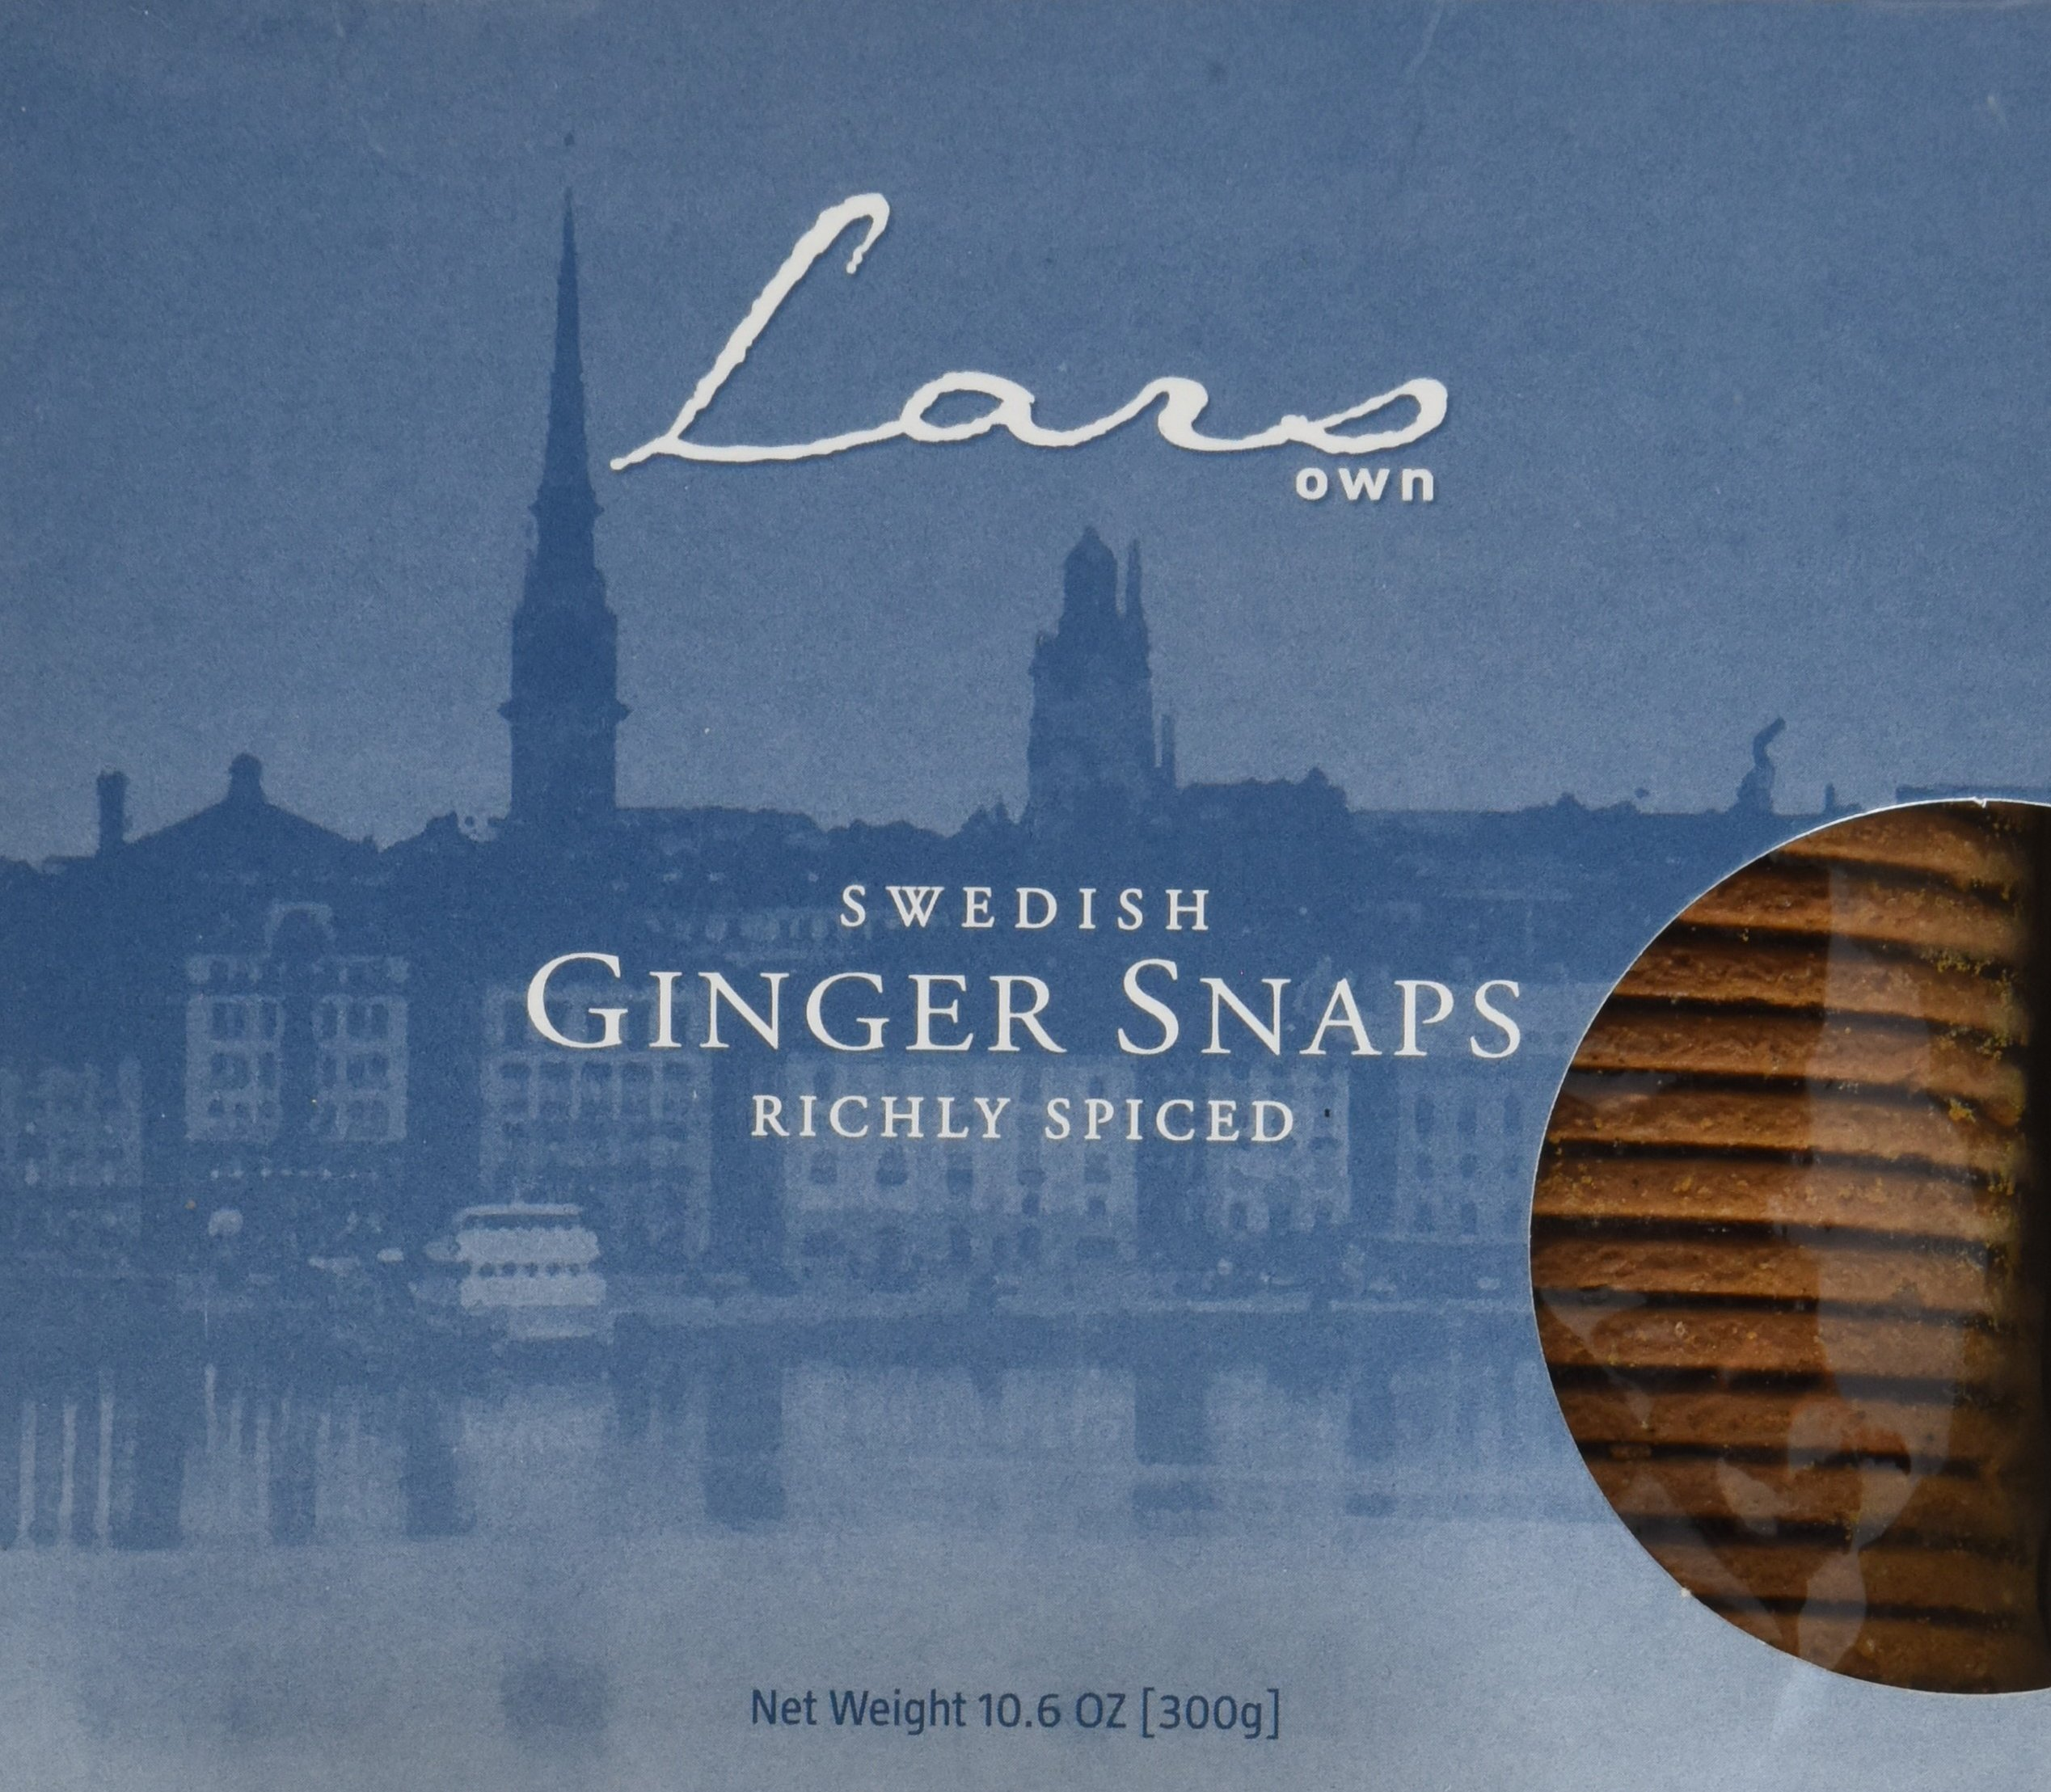 Lars' Own Swedish Ginger Snaps, Boxes, 10.6 oz by Lars' Own